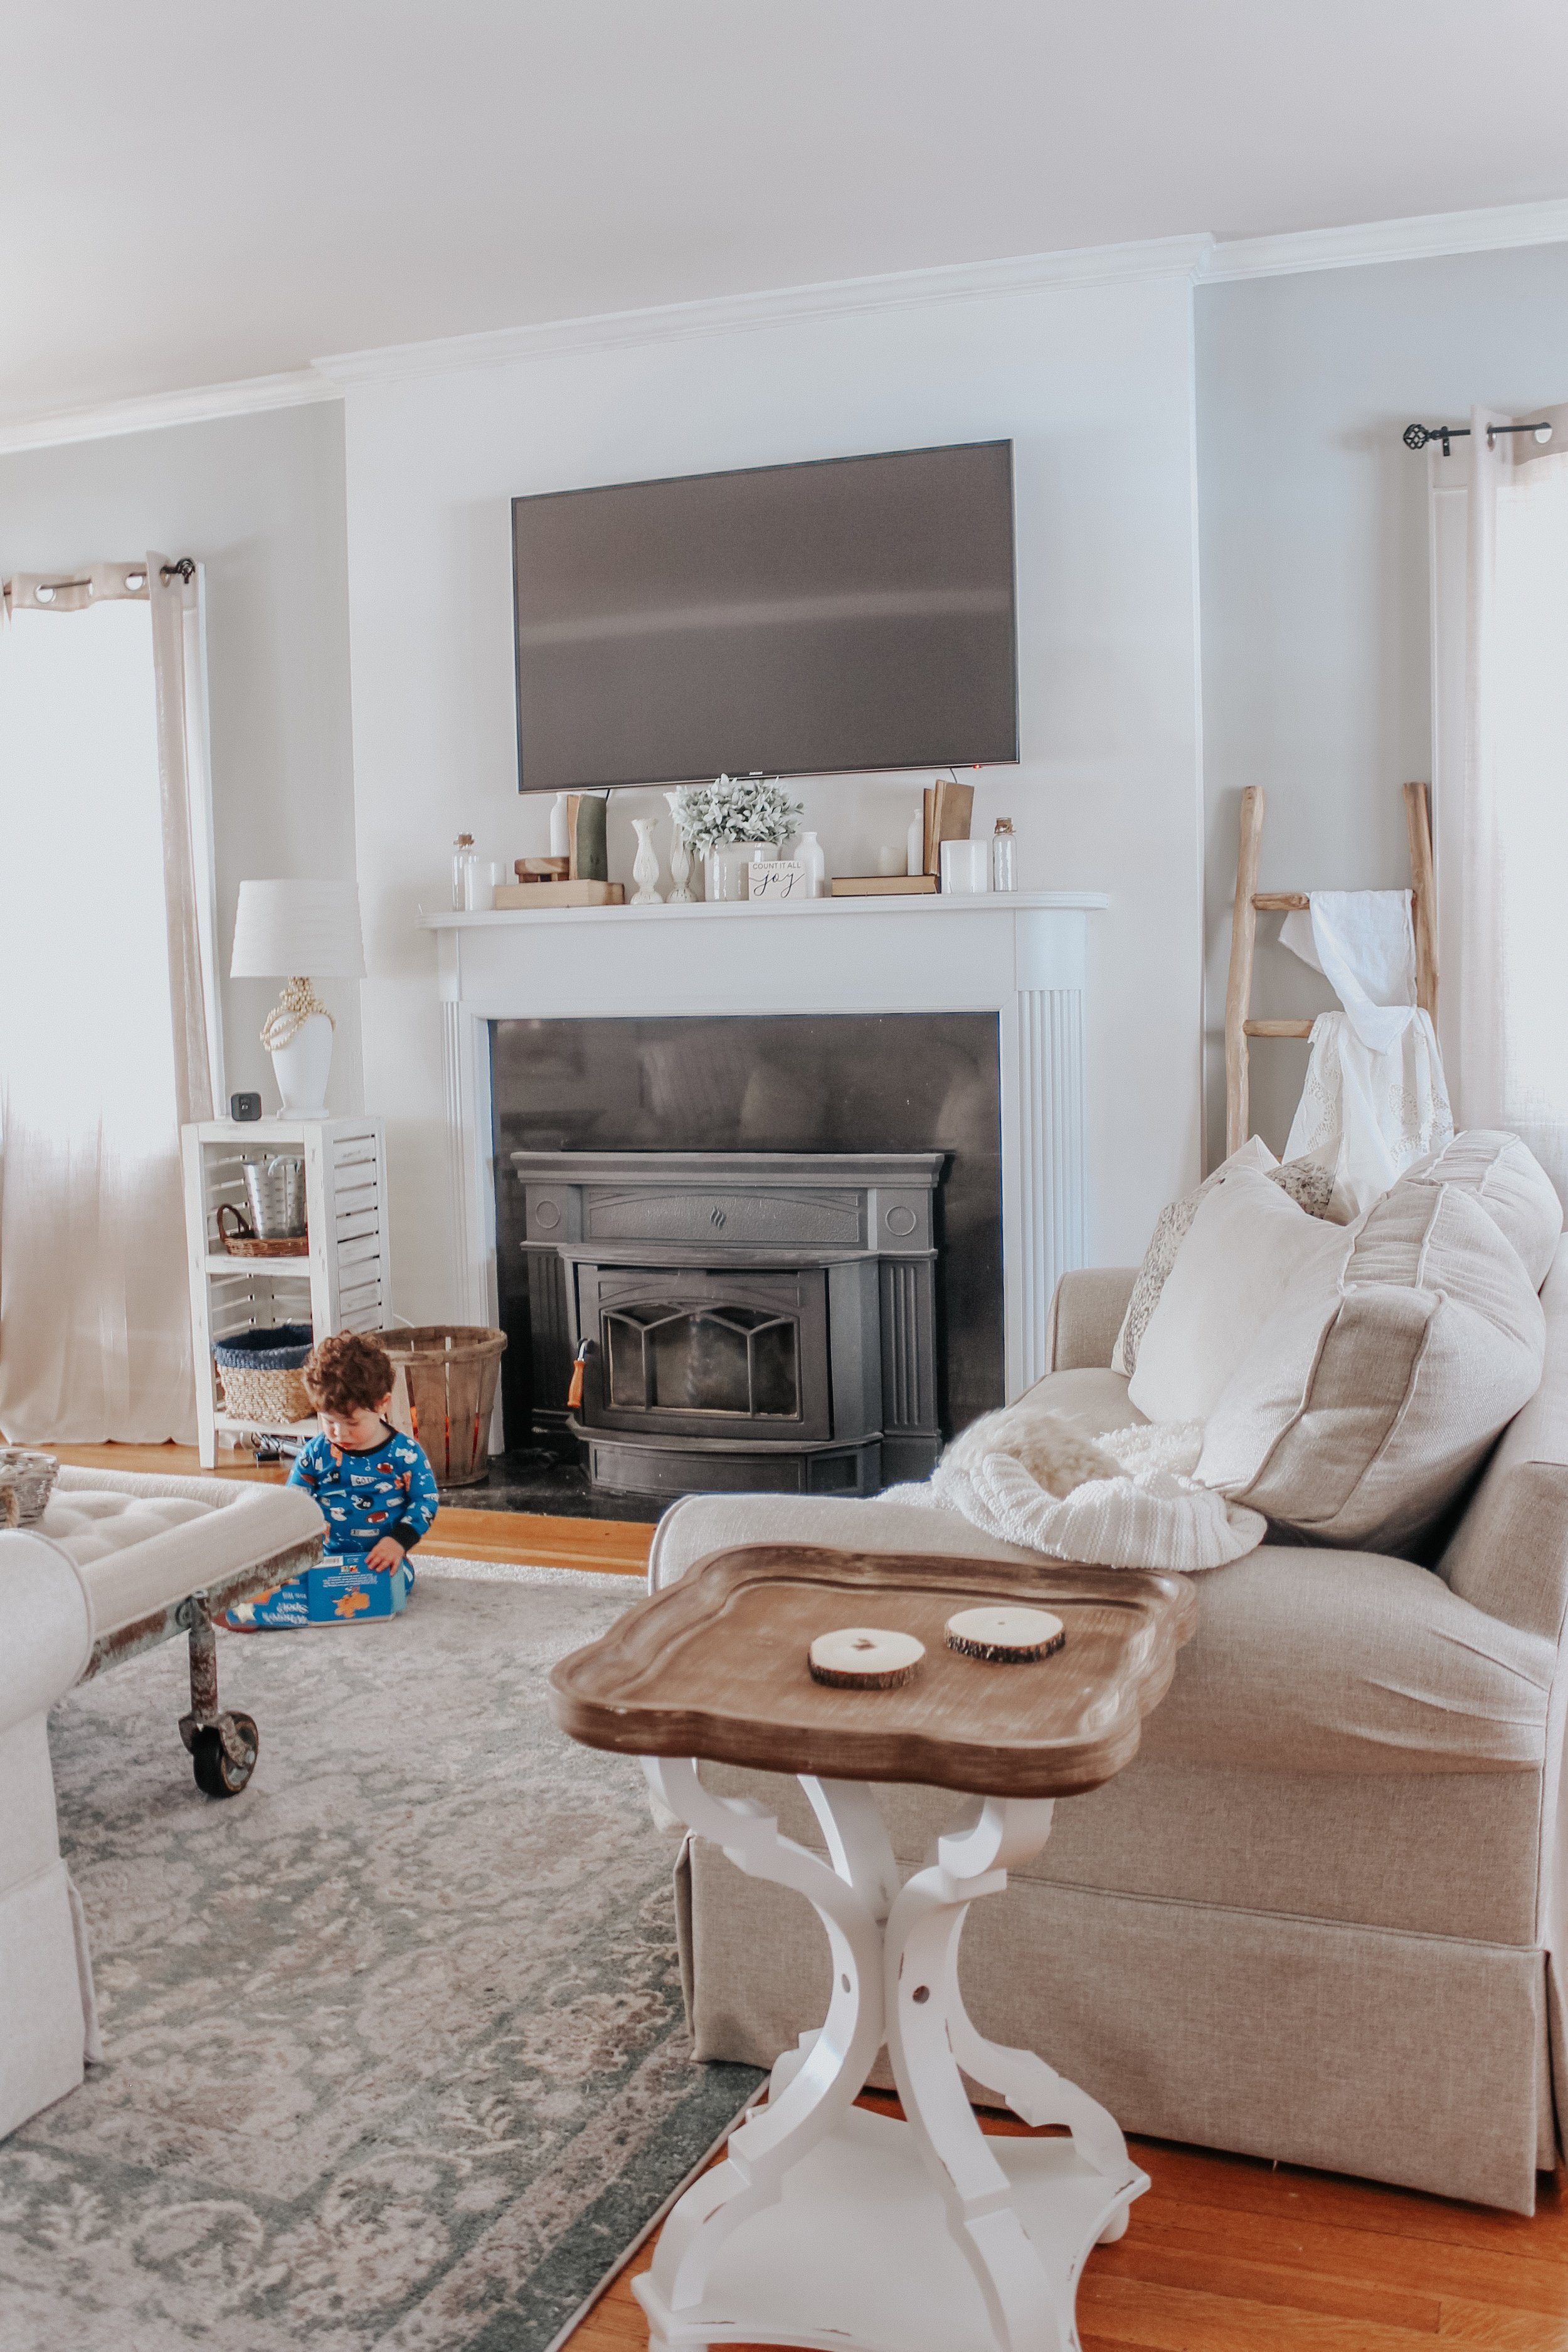 Fireplace and mantle decor